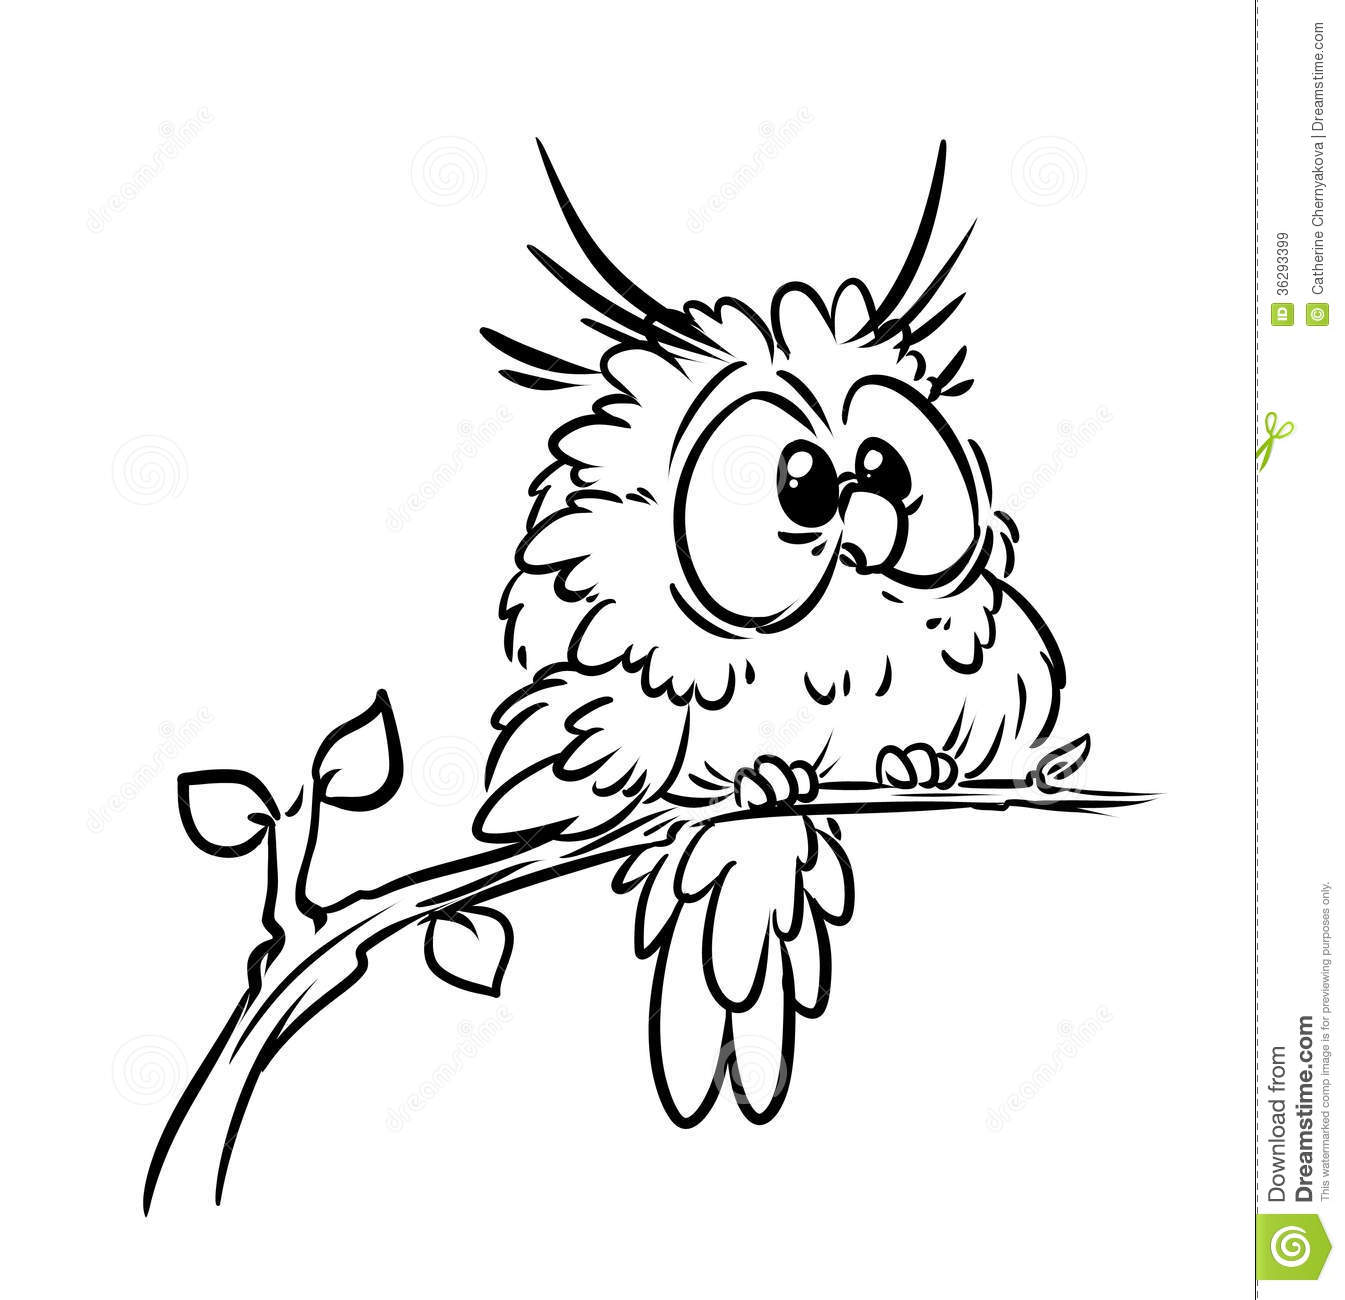 7681 furthermore Stock Photo Birch Grove Falling Leaf Image25667520 additionally Country Ranch House Plans 3 Bedroom With 2 Car Garage 7258 likewise Bird Outline Template furthermore Royalty Free Stock Images Bird Owl Coloring Pages Contour Illustration Image36293399. on bird house plans